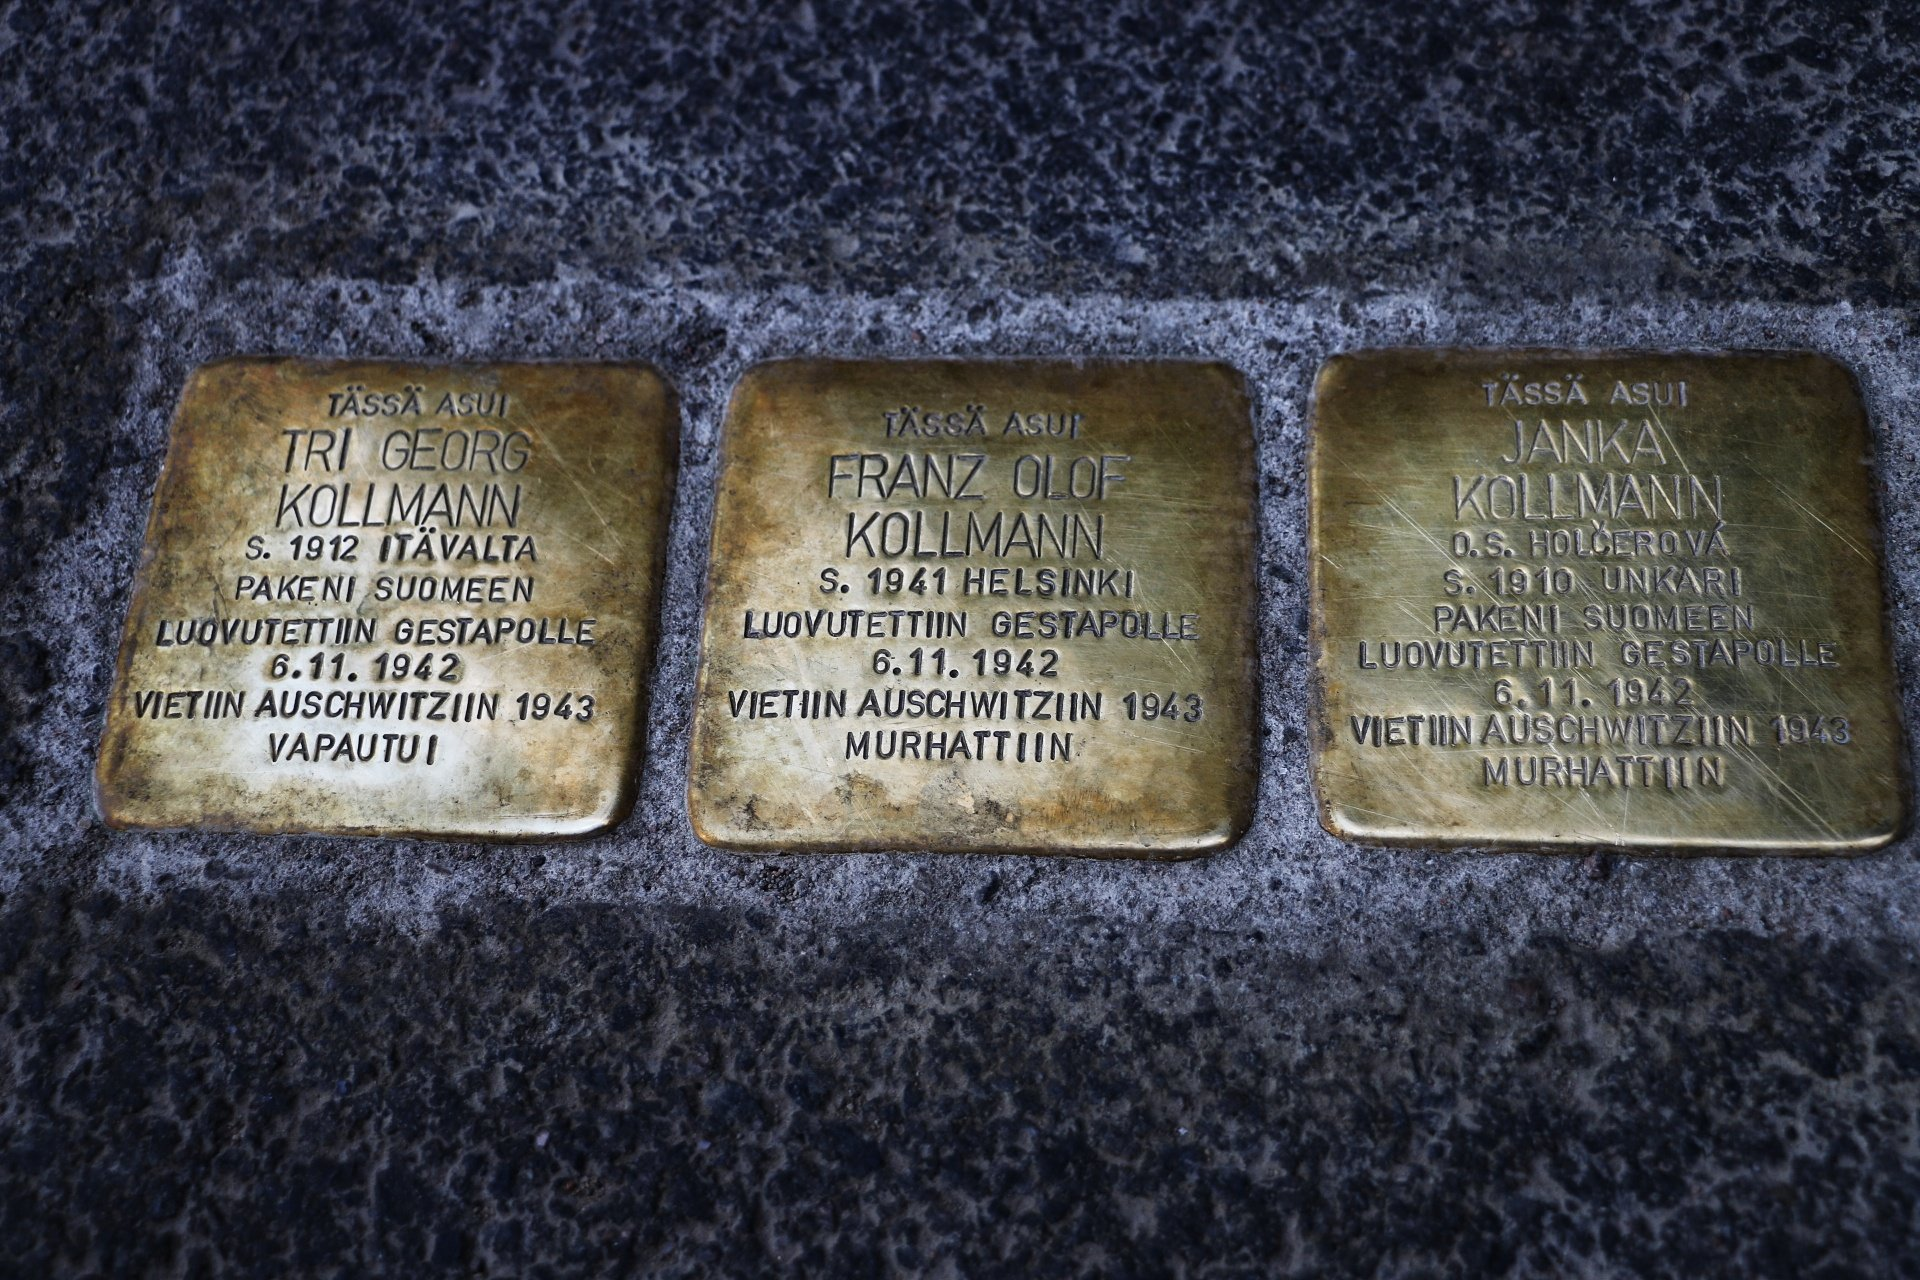 Finland's First Stolpersteins Inscribe The Names of a Jewish Family Who Was Handed Over to Nazis and Sent to Auschwitz